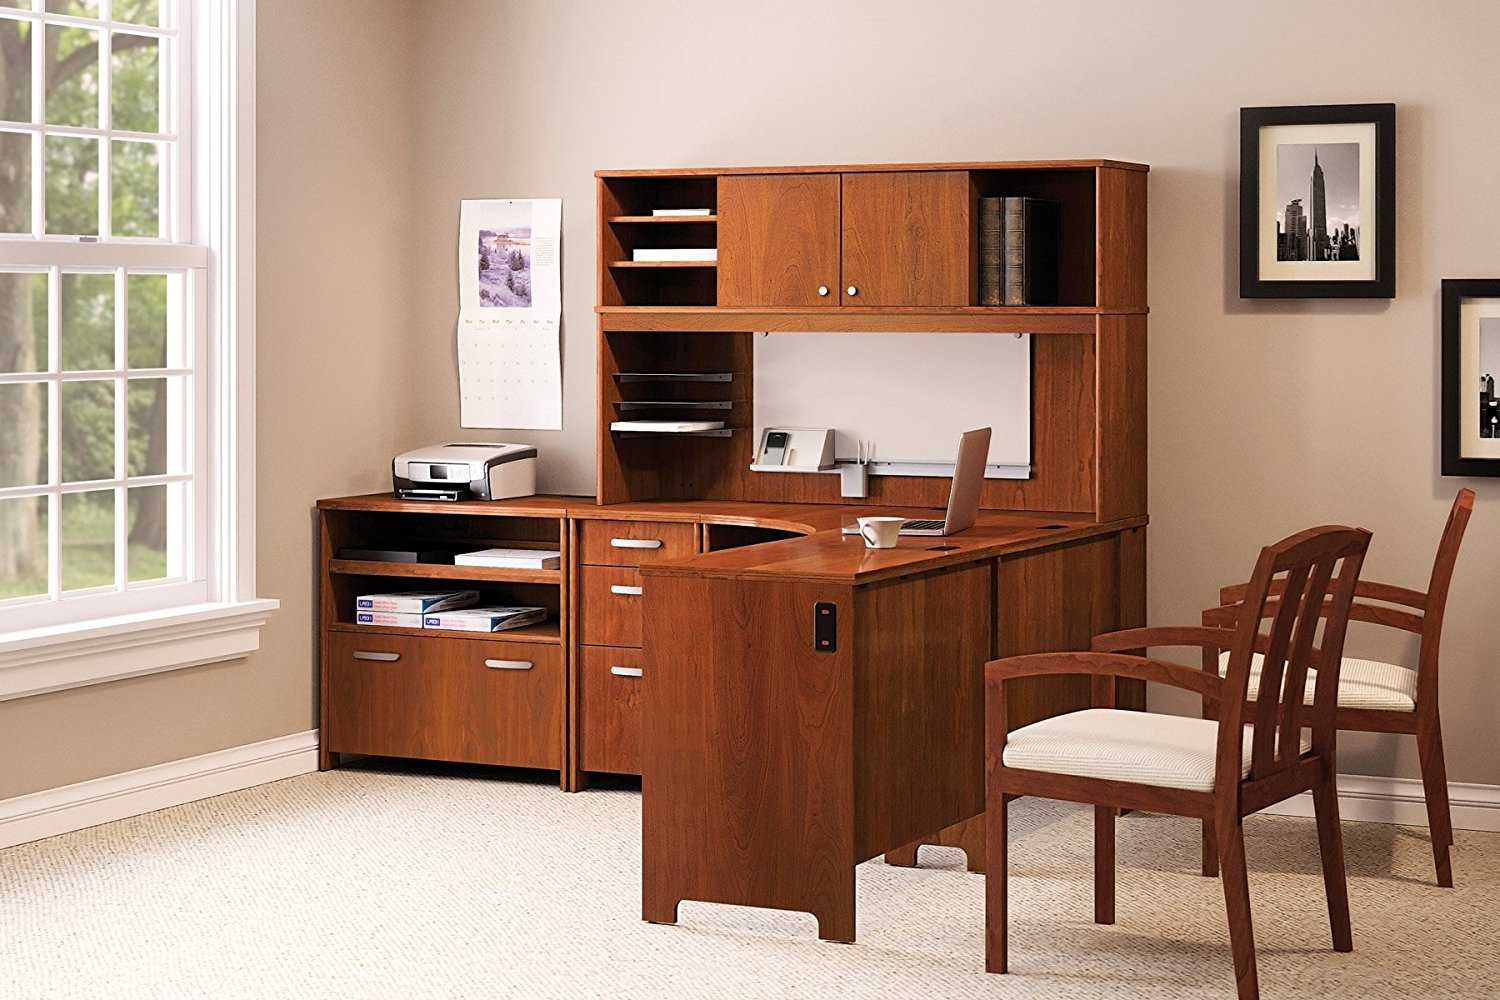 "Bush L Shaped Desk W/Hutch Natural Cherry Finish Desk: 30 1/4""H X 58""W X 74 1/2""D Hutch: 36 3/4""H X 58""W X 14 3/4""D Pedestal: 30 1/4""H X 16""W X 20""D - Hansen Cherry"